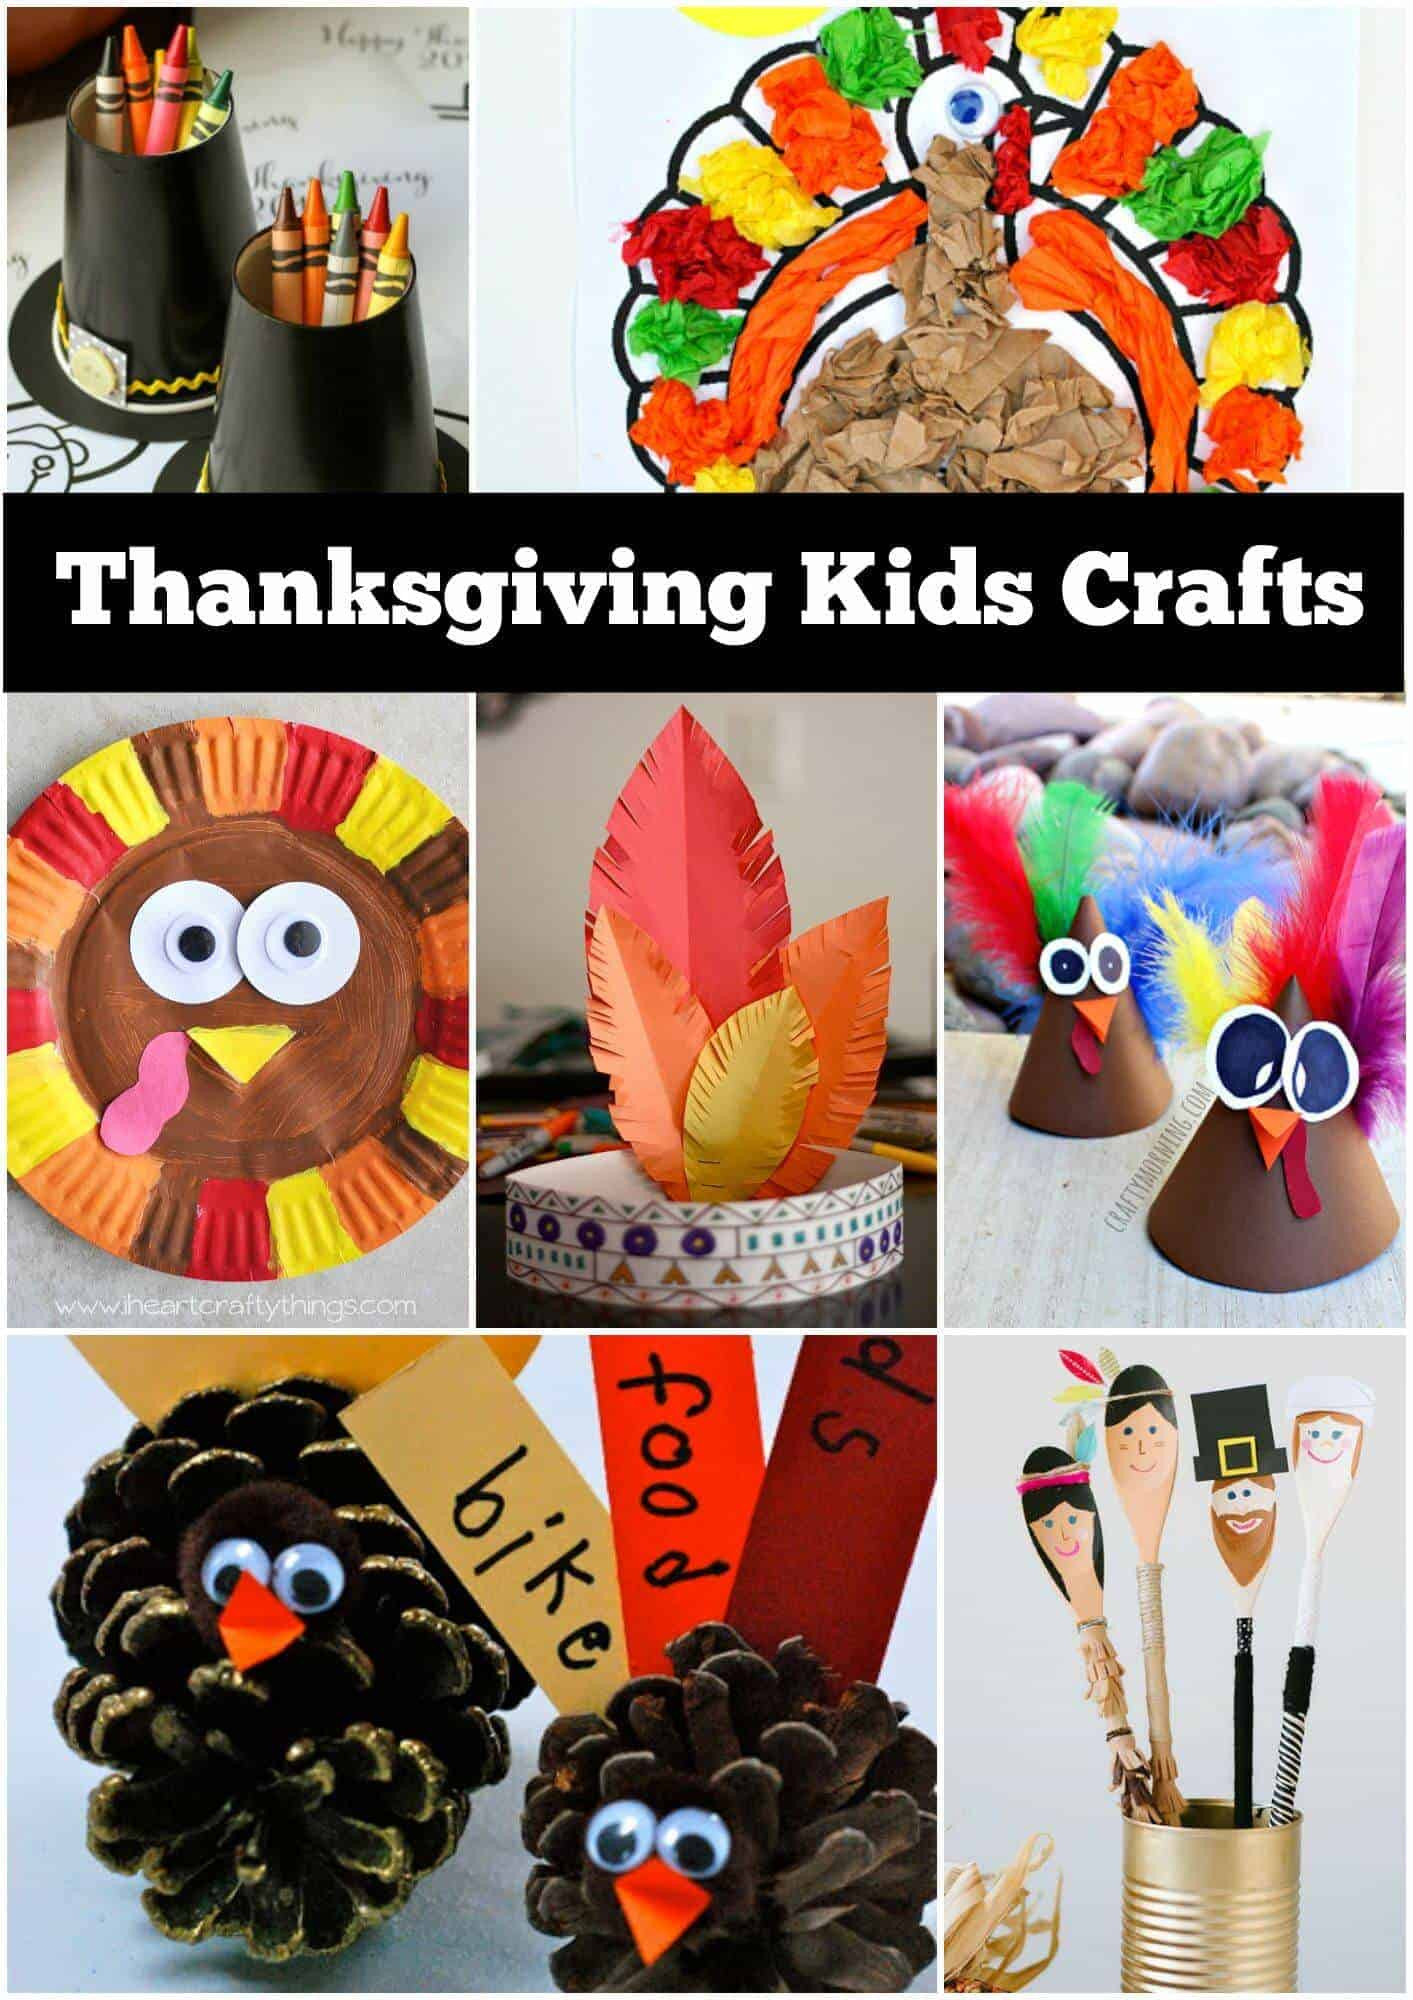 Turkey Crafts For Thanksgiving  12 Thanksgiving Craft Ideas for kids Page 2 of 2